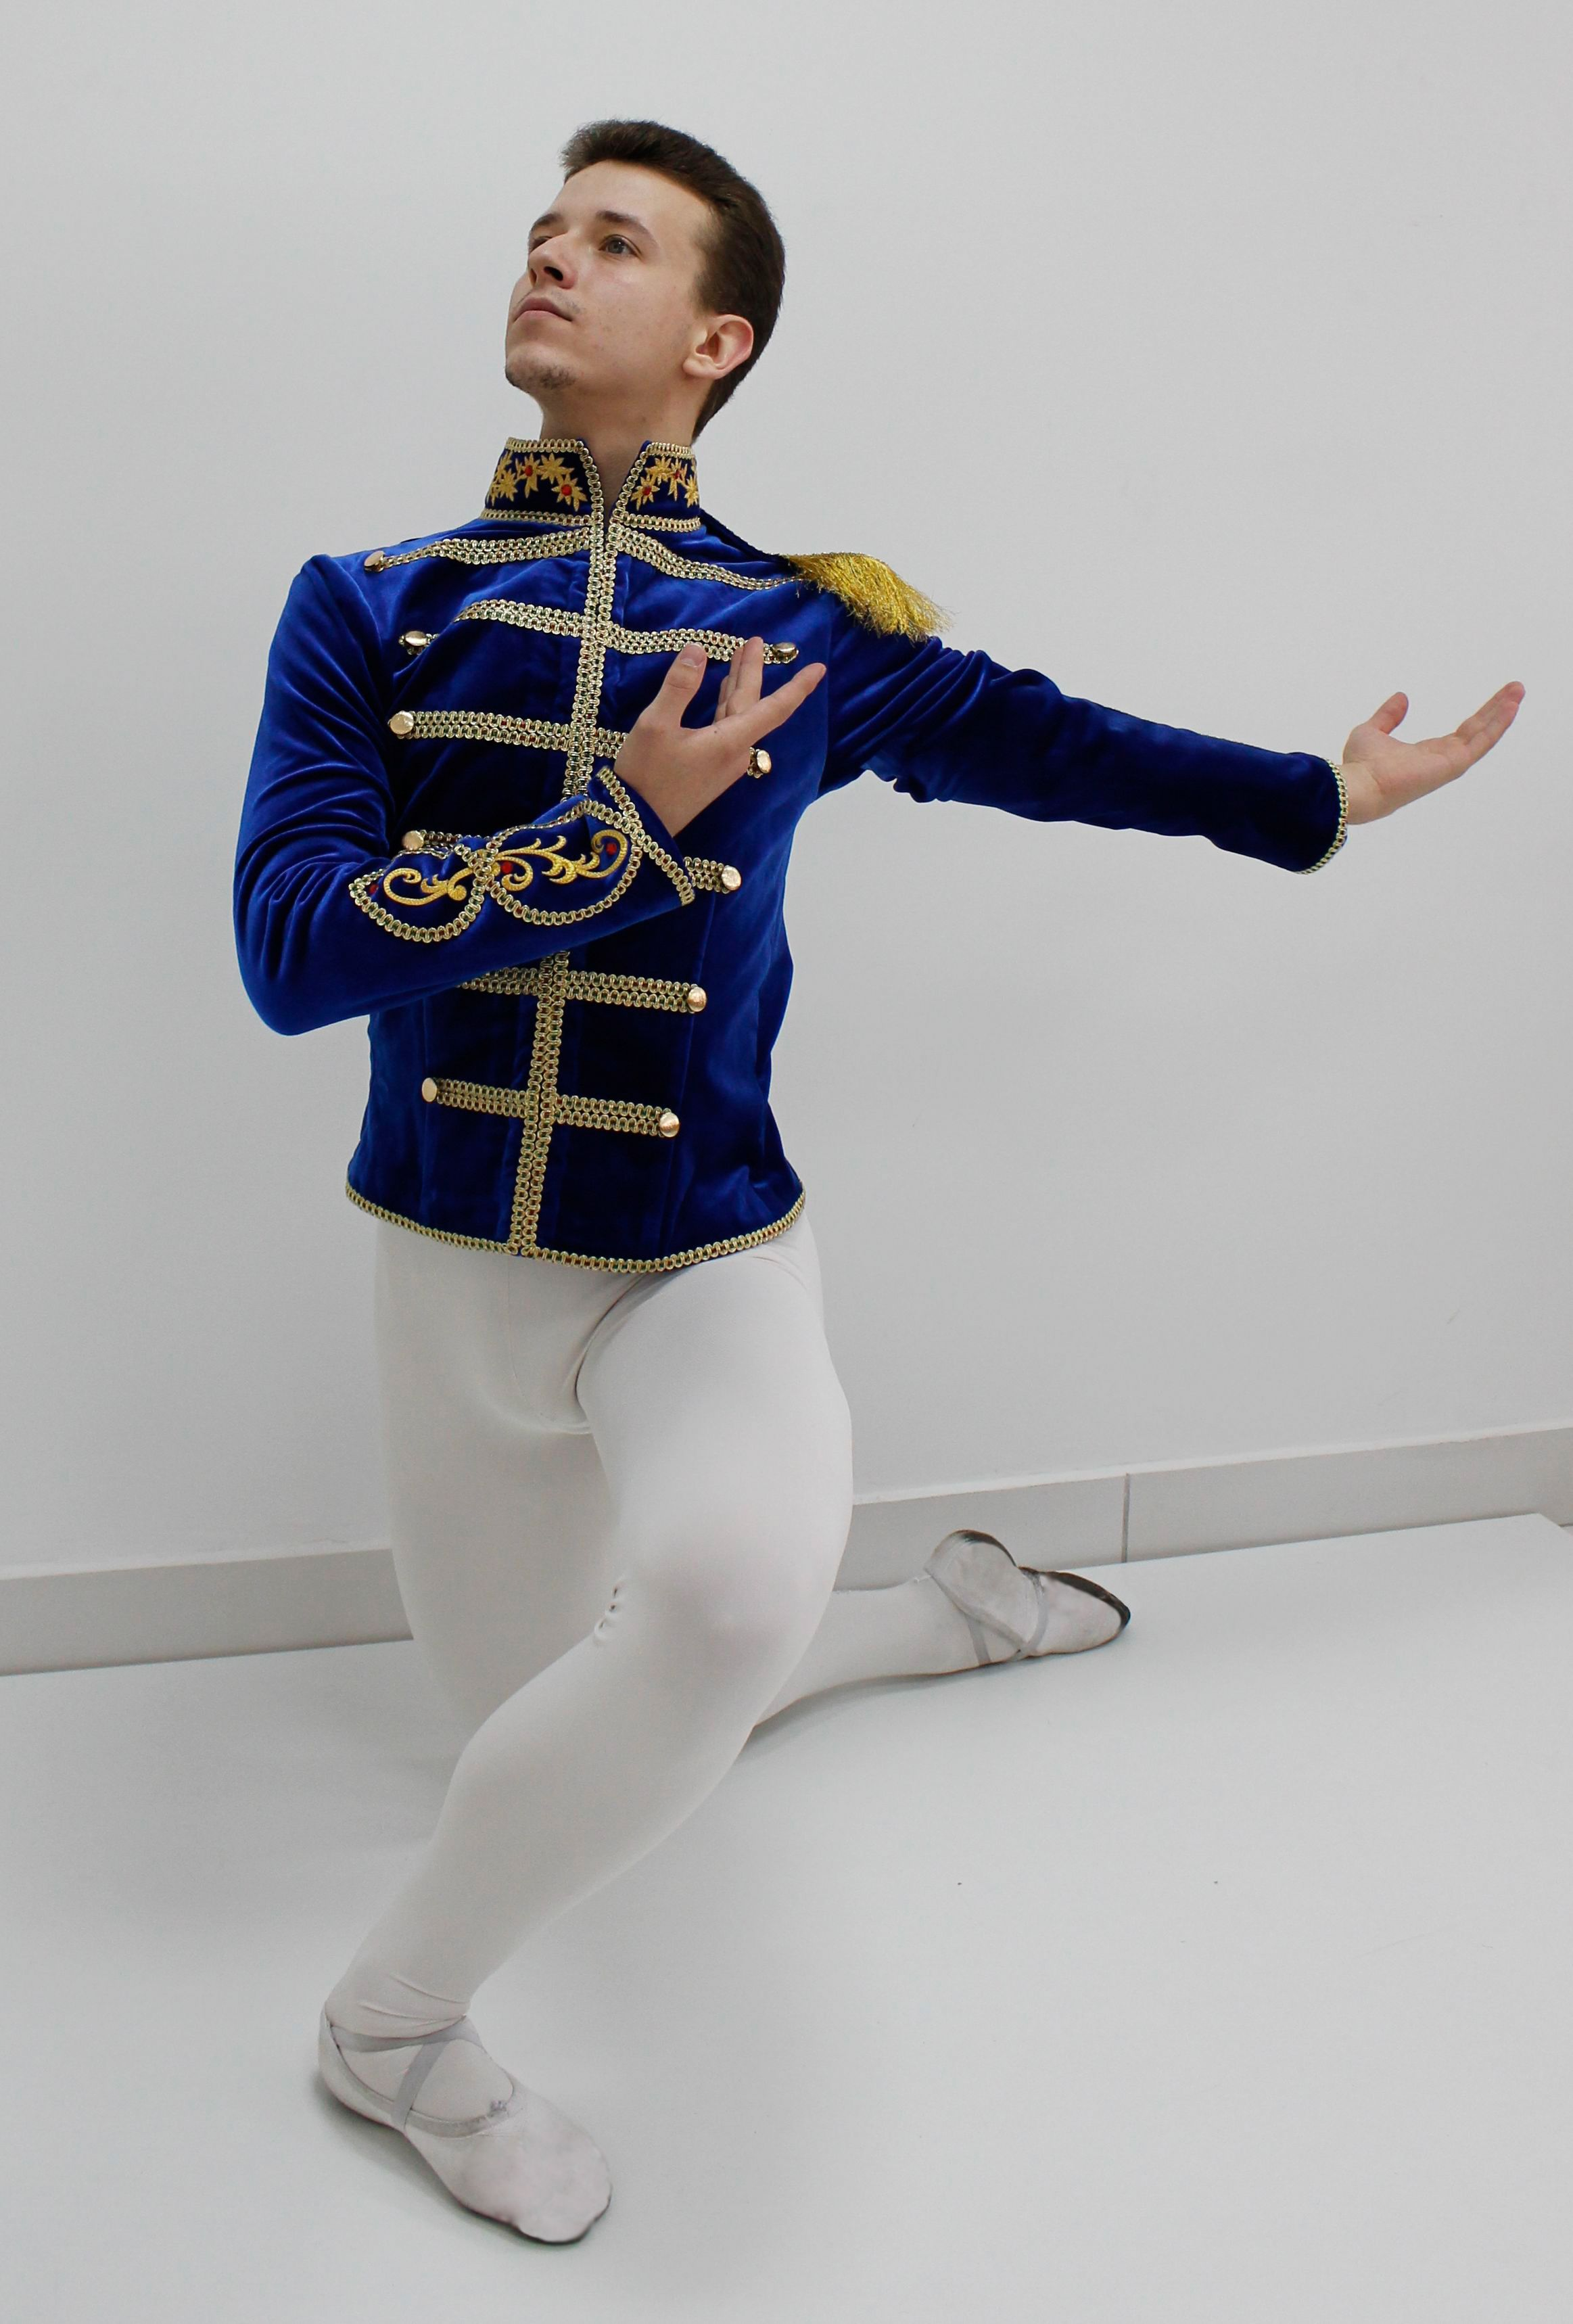 Stage costume made by Ballet Fashion | costura | Pinterest ...